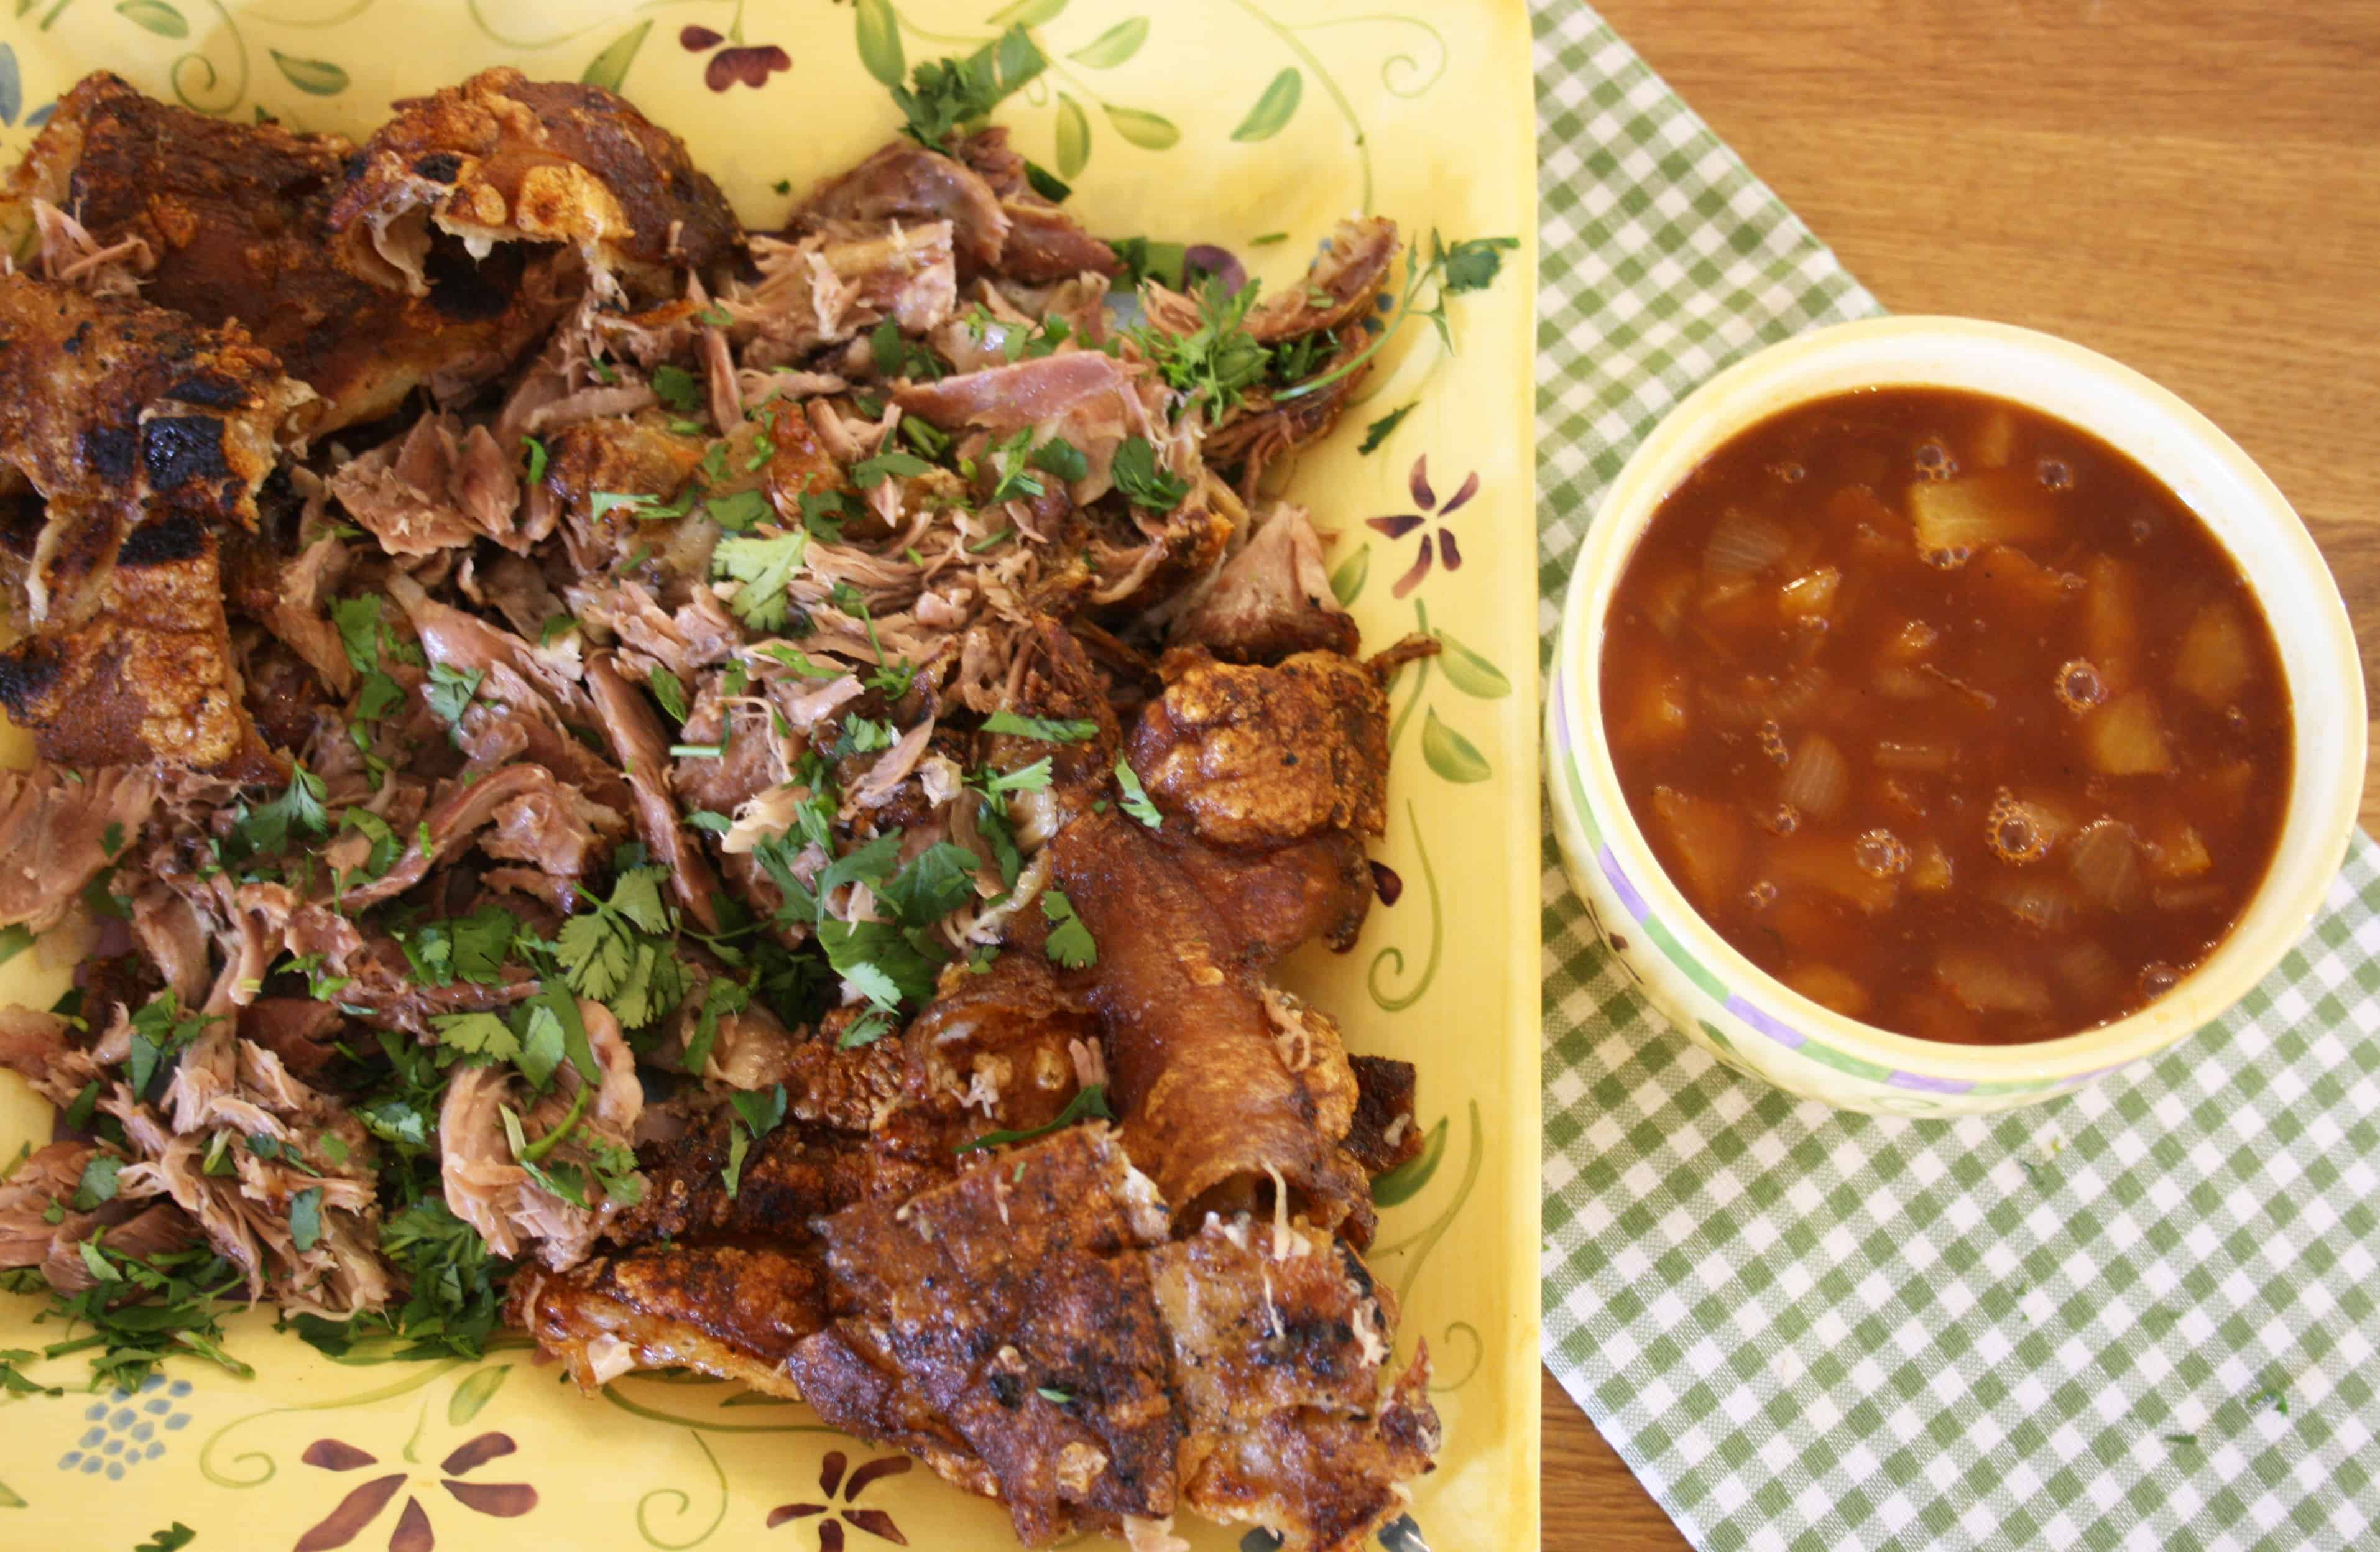 Pork shanks, rubbed with paprika and seasoning, slow roasted and then crisped up on the barbecue, shredded and served with a pineapple sauce.